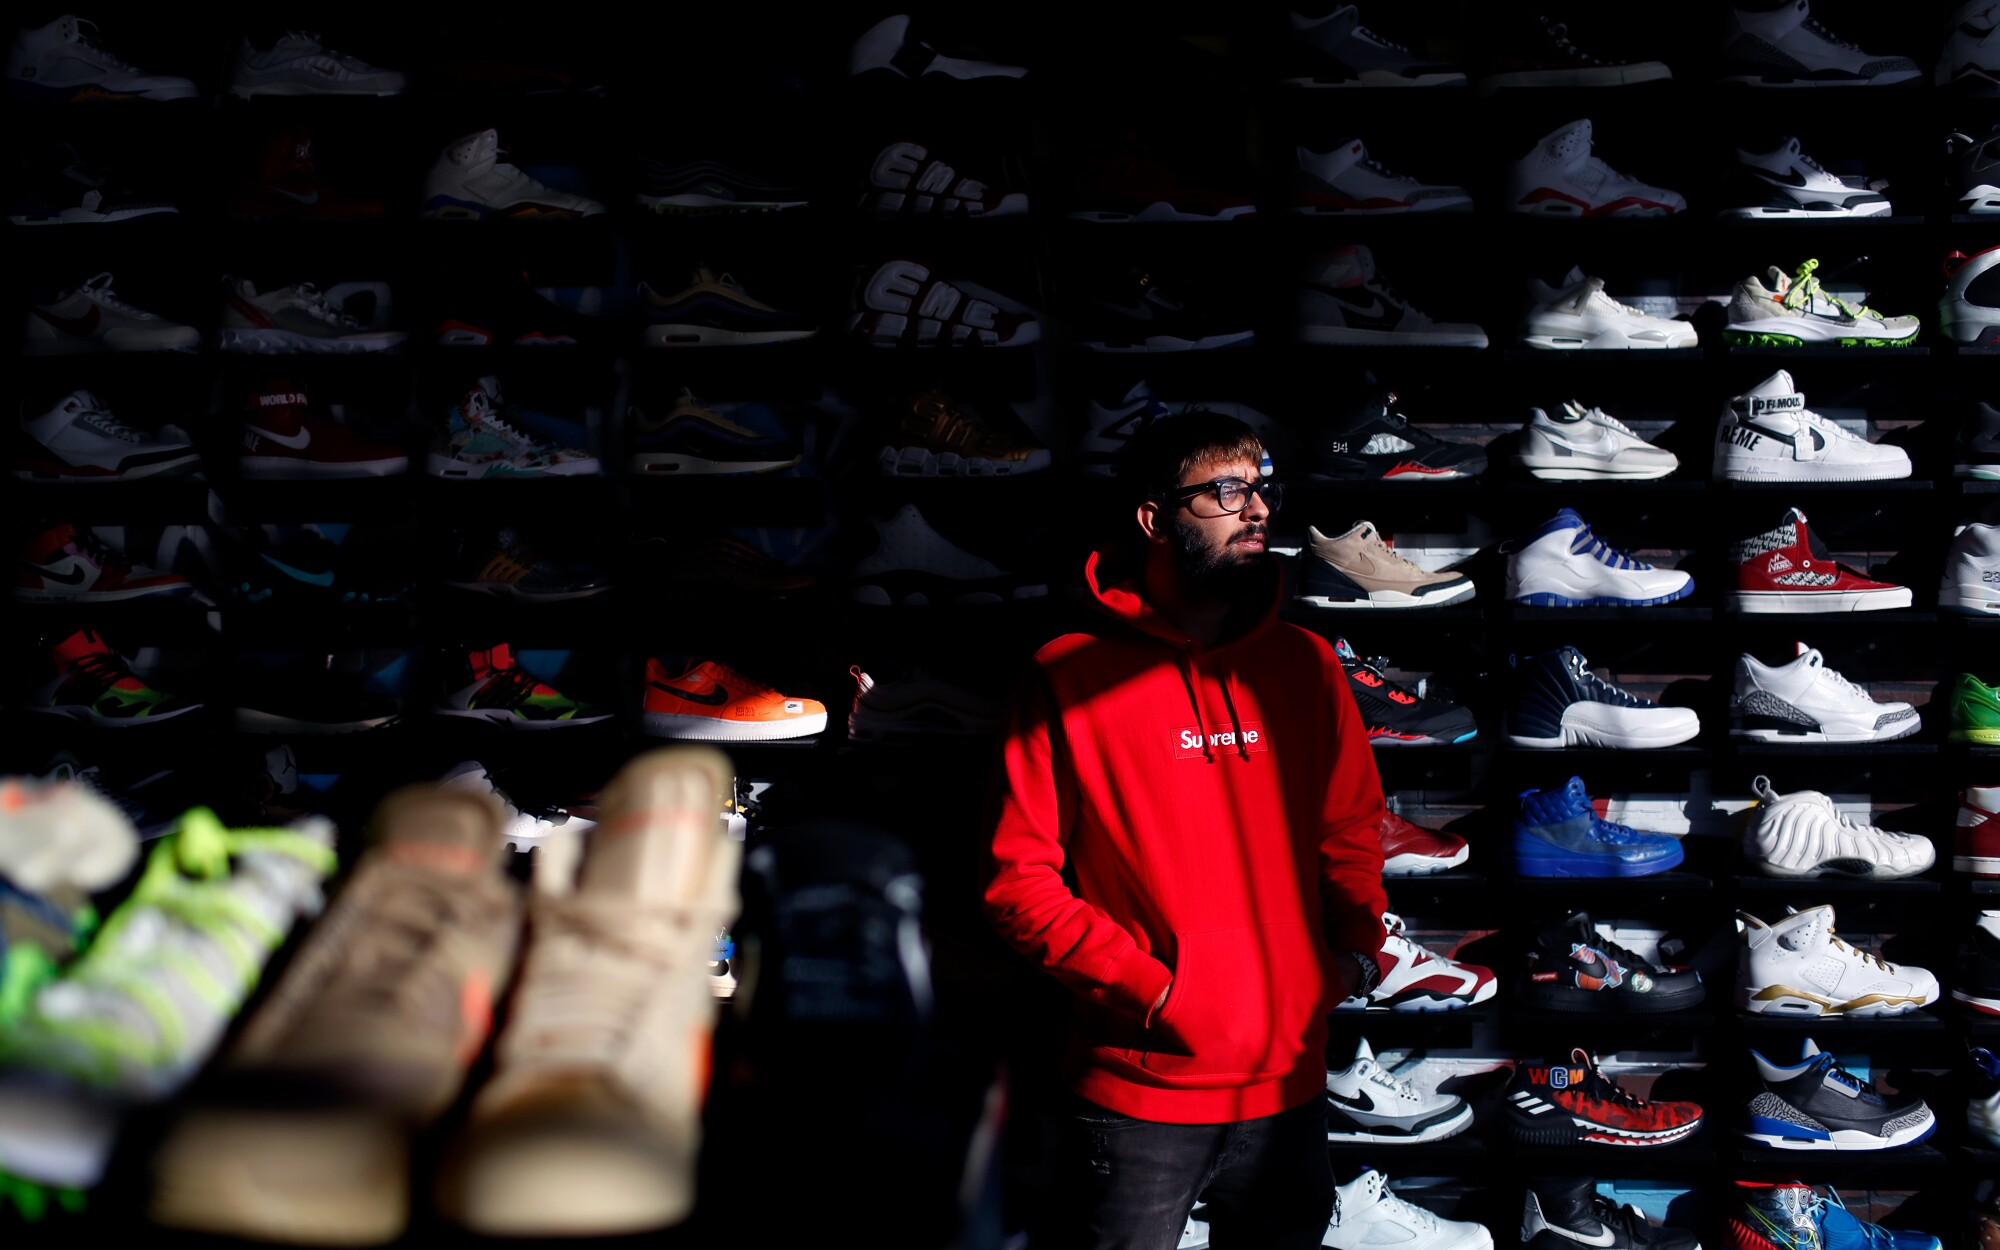 A no-savings generation is cashing in their sneaker collections - Los Angeles Times